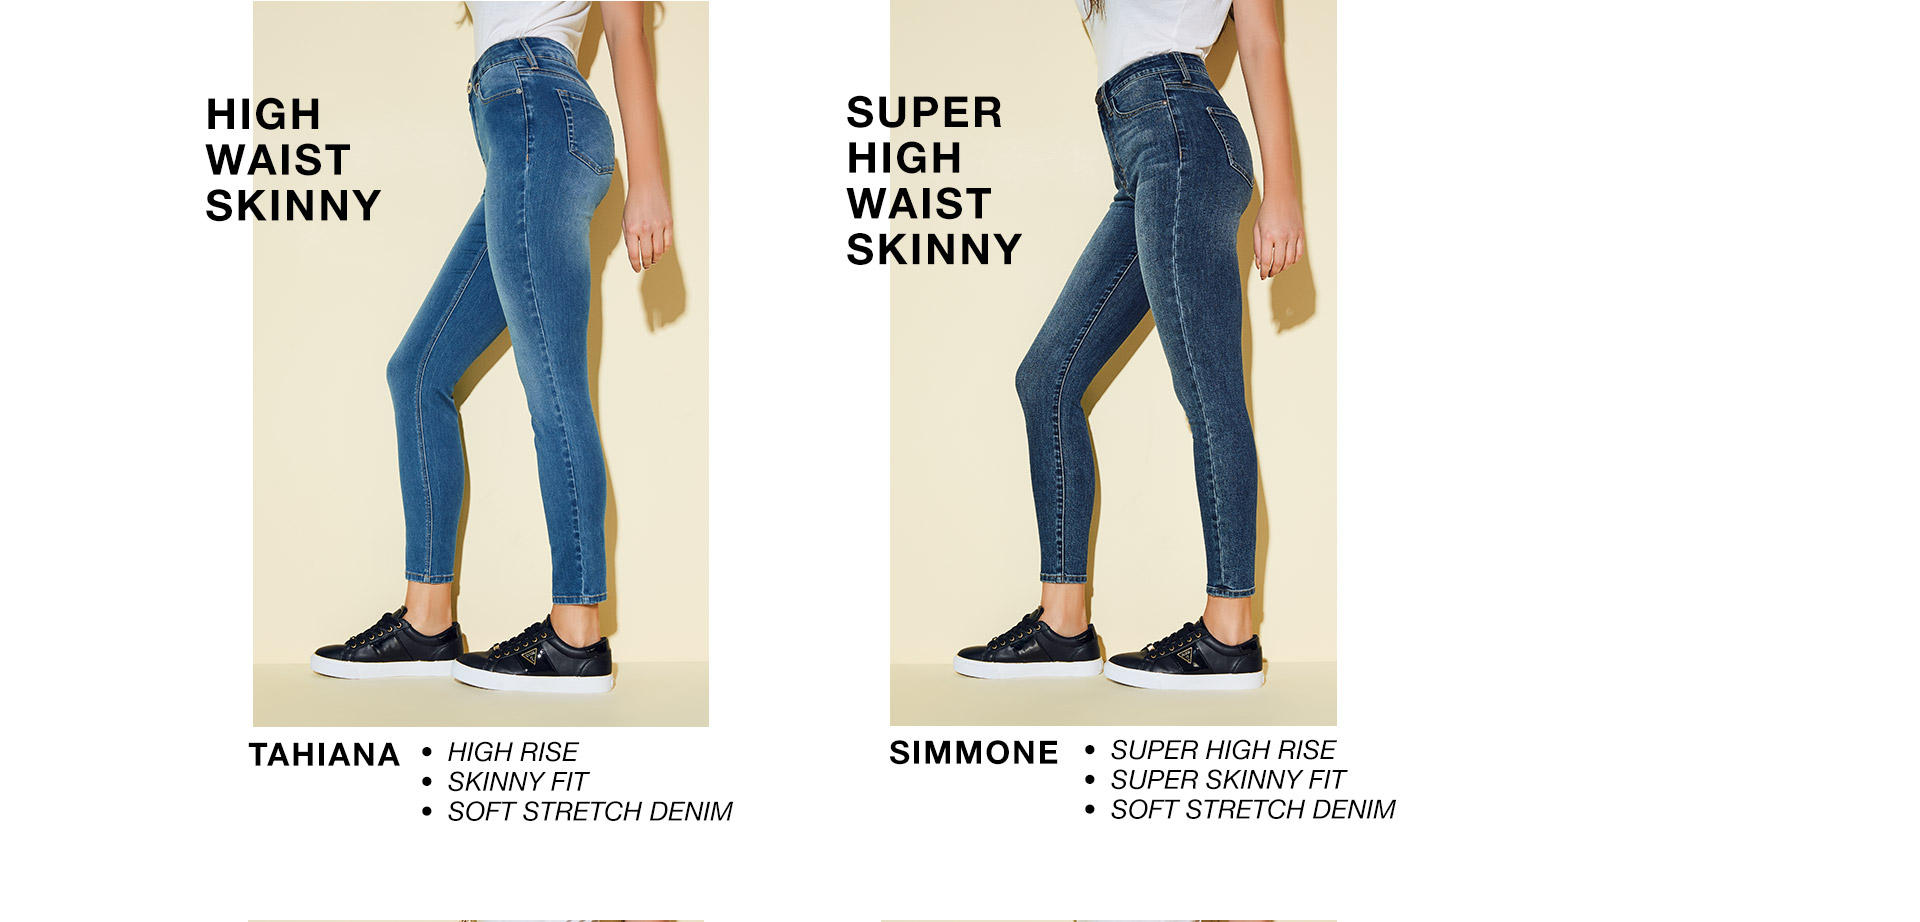 High Waist Skinny / Super High Waist Skinny